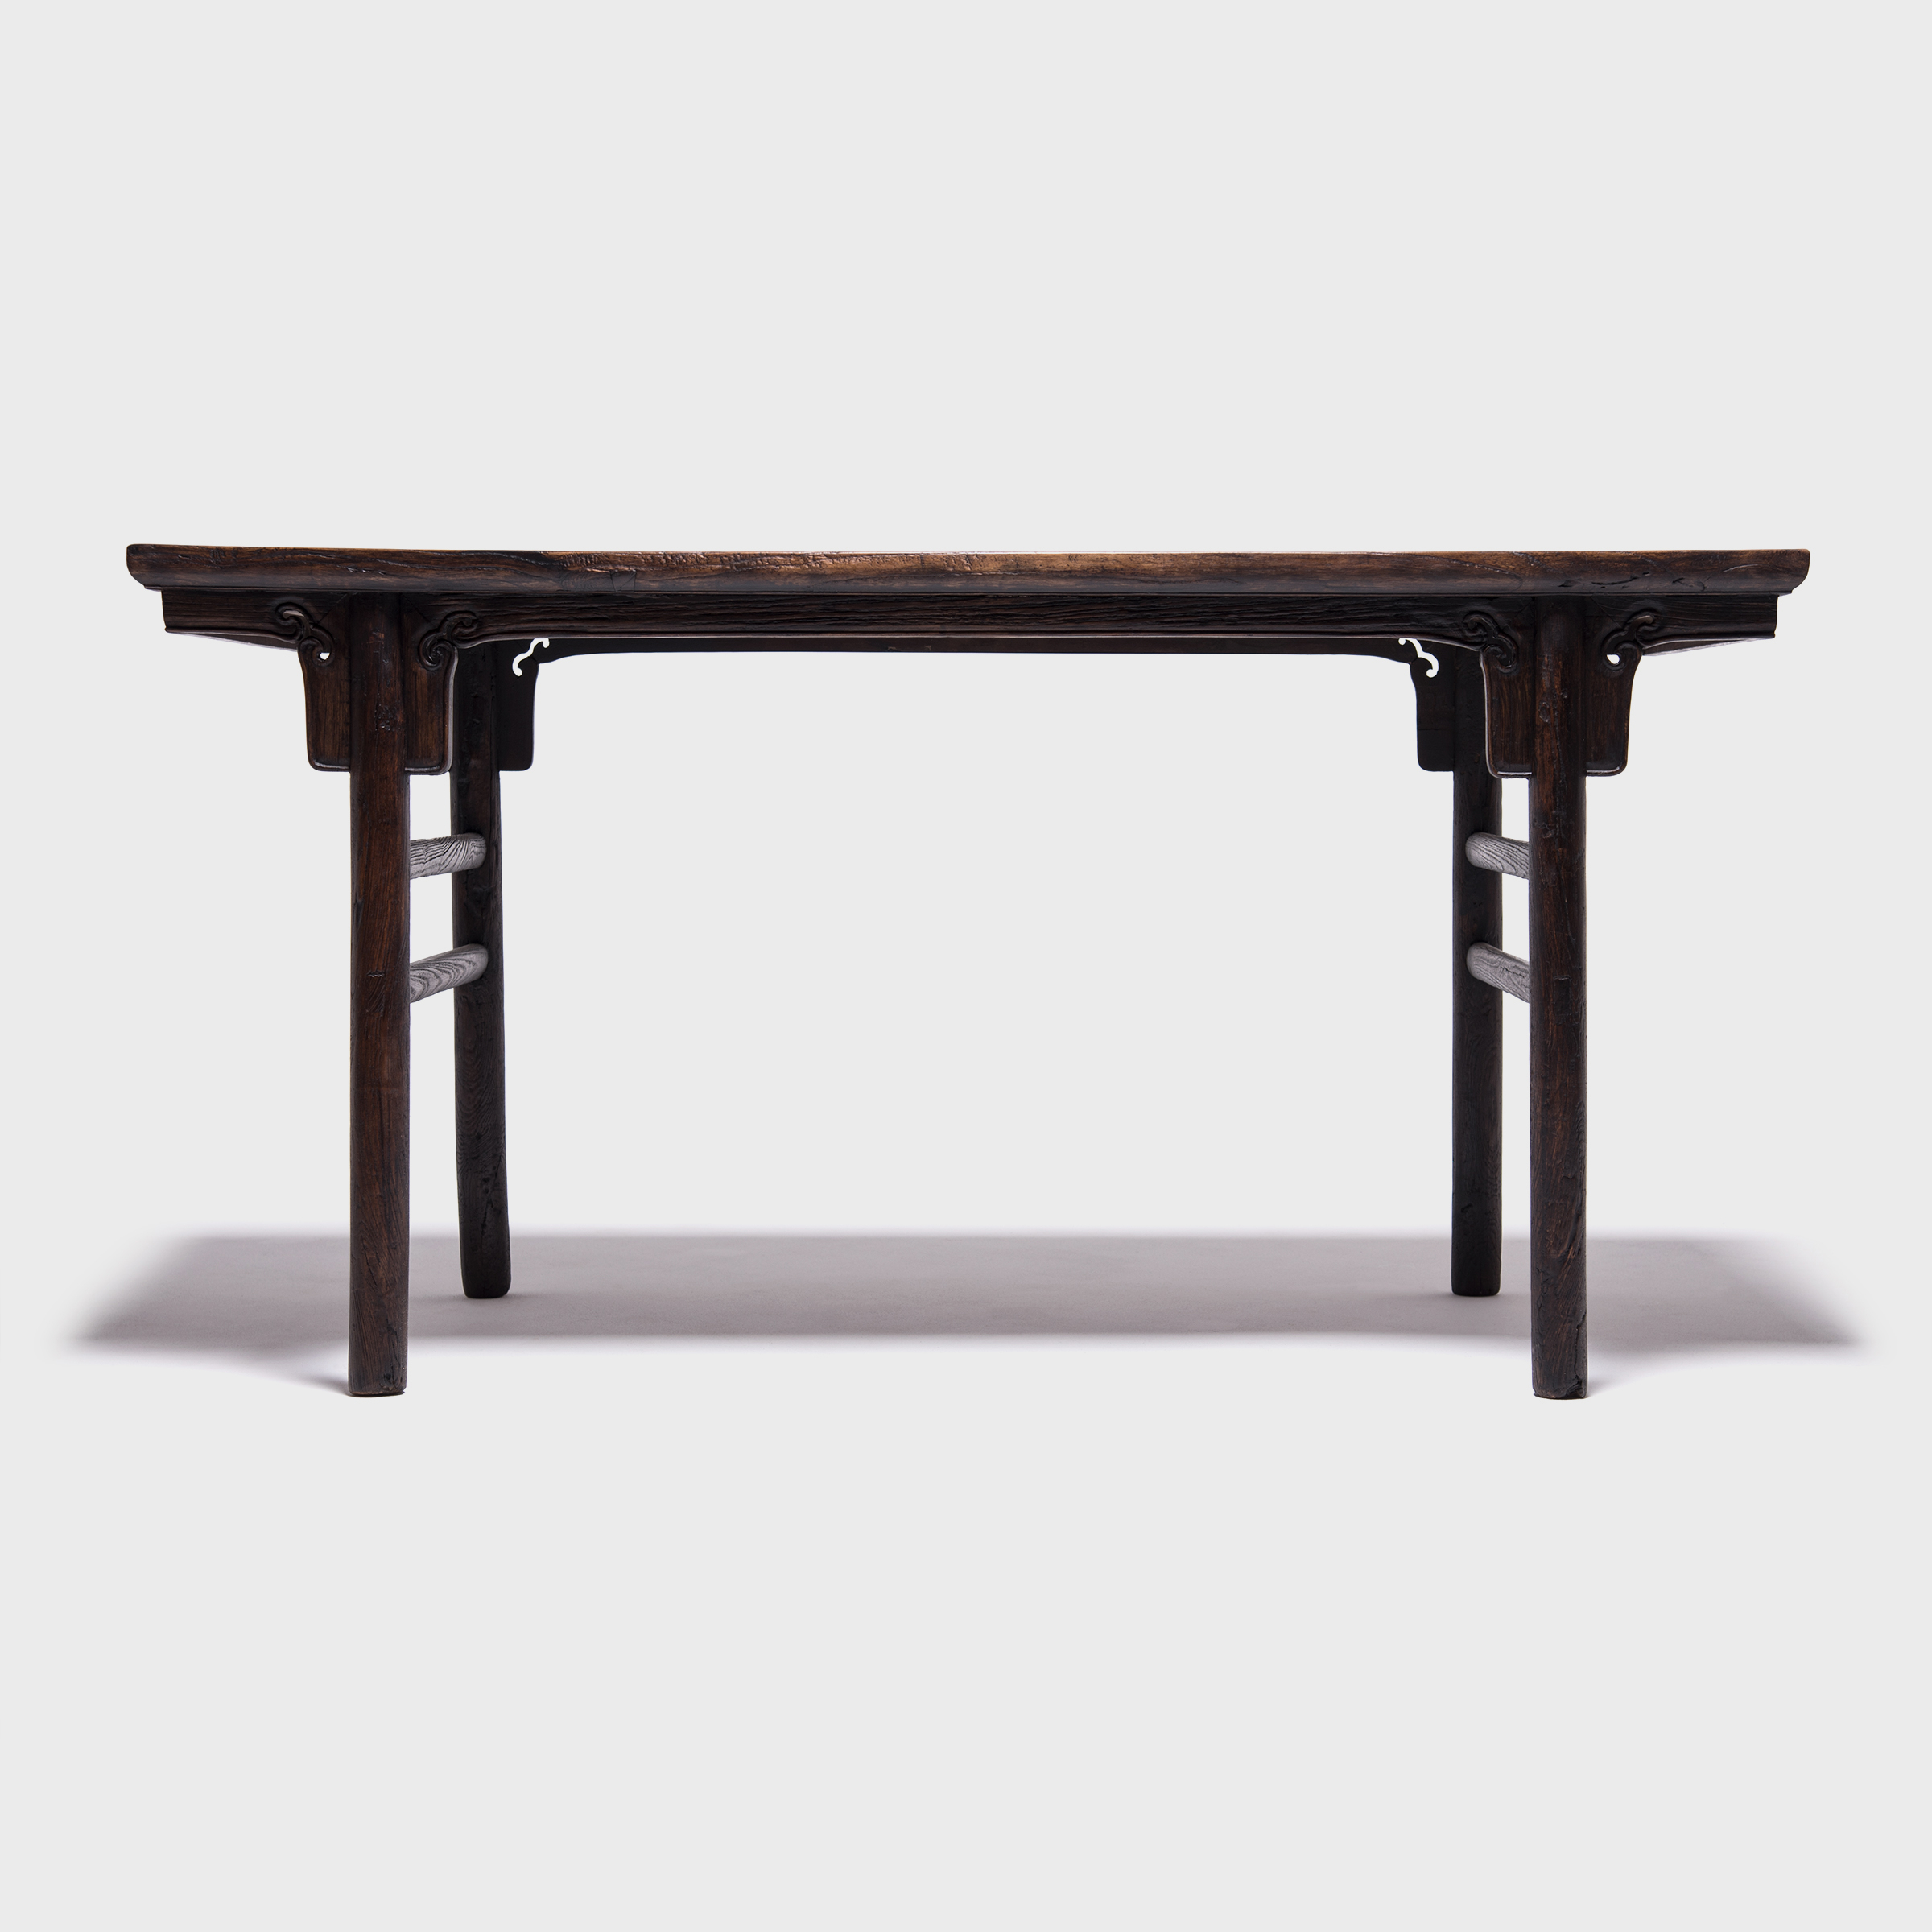 Chinese Tables And Antique Chinese Tables | Pagoda Red For Era Limestone Console Tables (View 18 of 20)